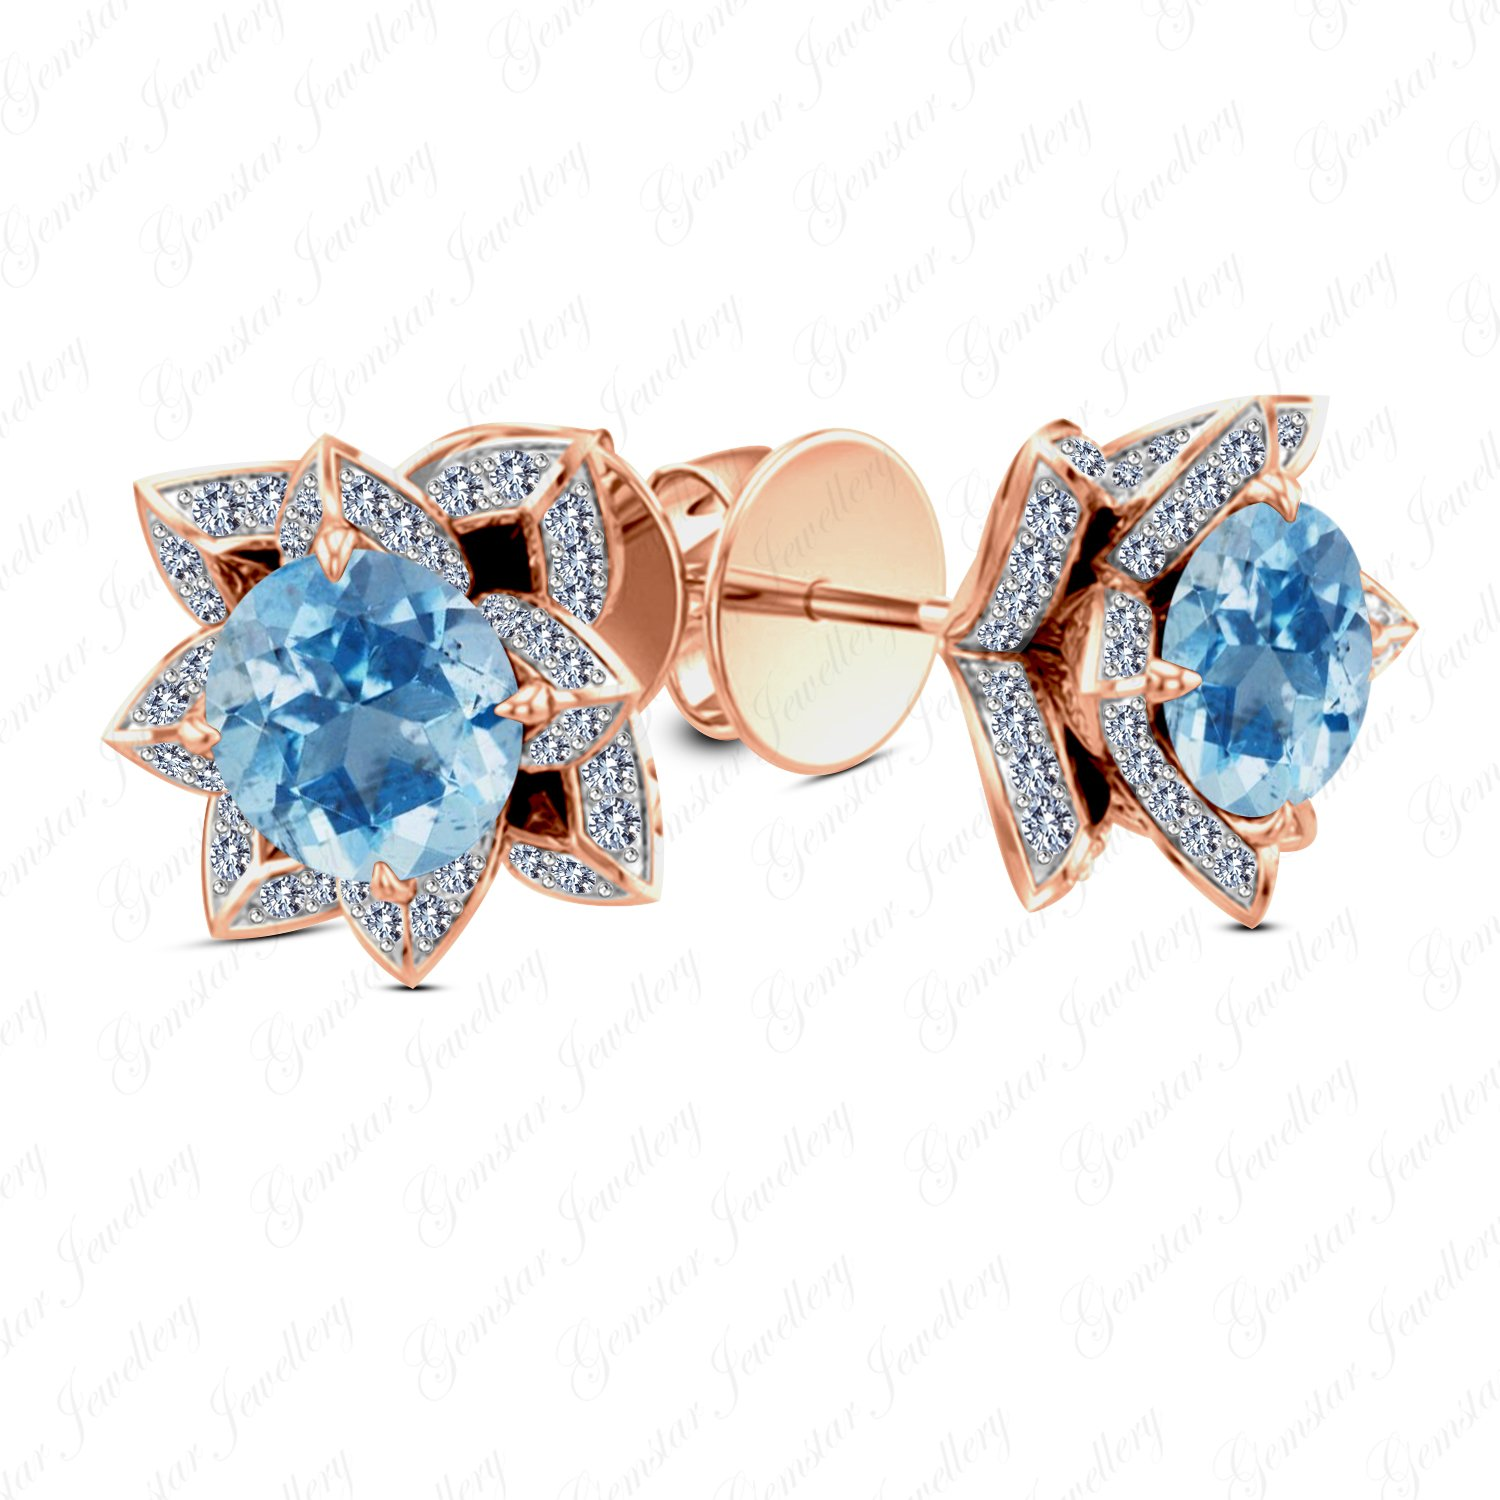 Gemstar Jewellery Classic Stud Lotus Earrings Screw Back In 14k Rose Gold Over Round Cut Aquamarine